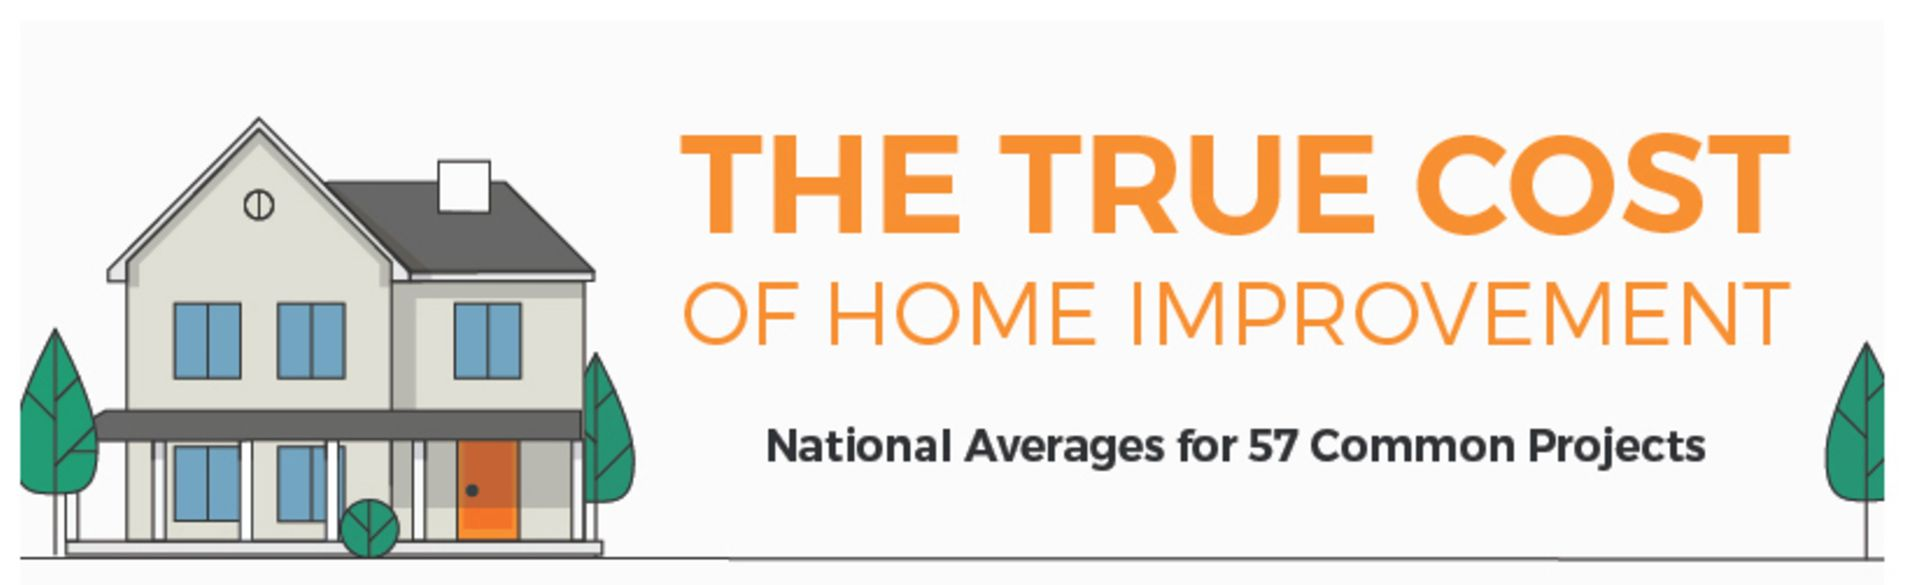 Do you know the true cost of home improvement?